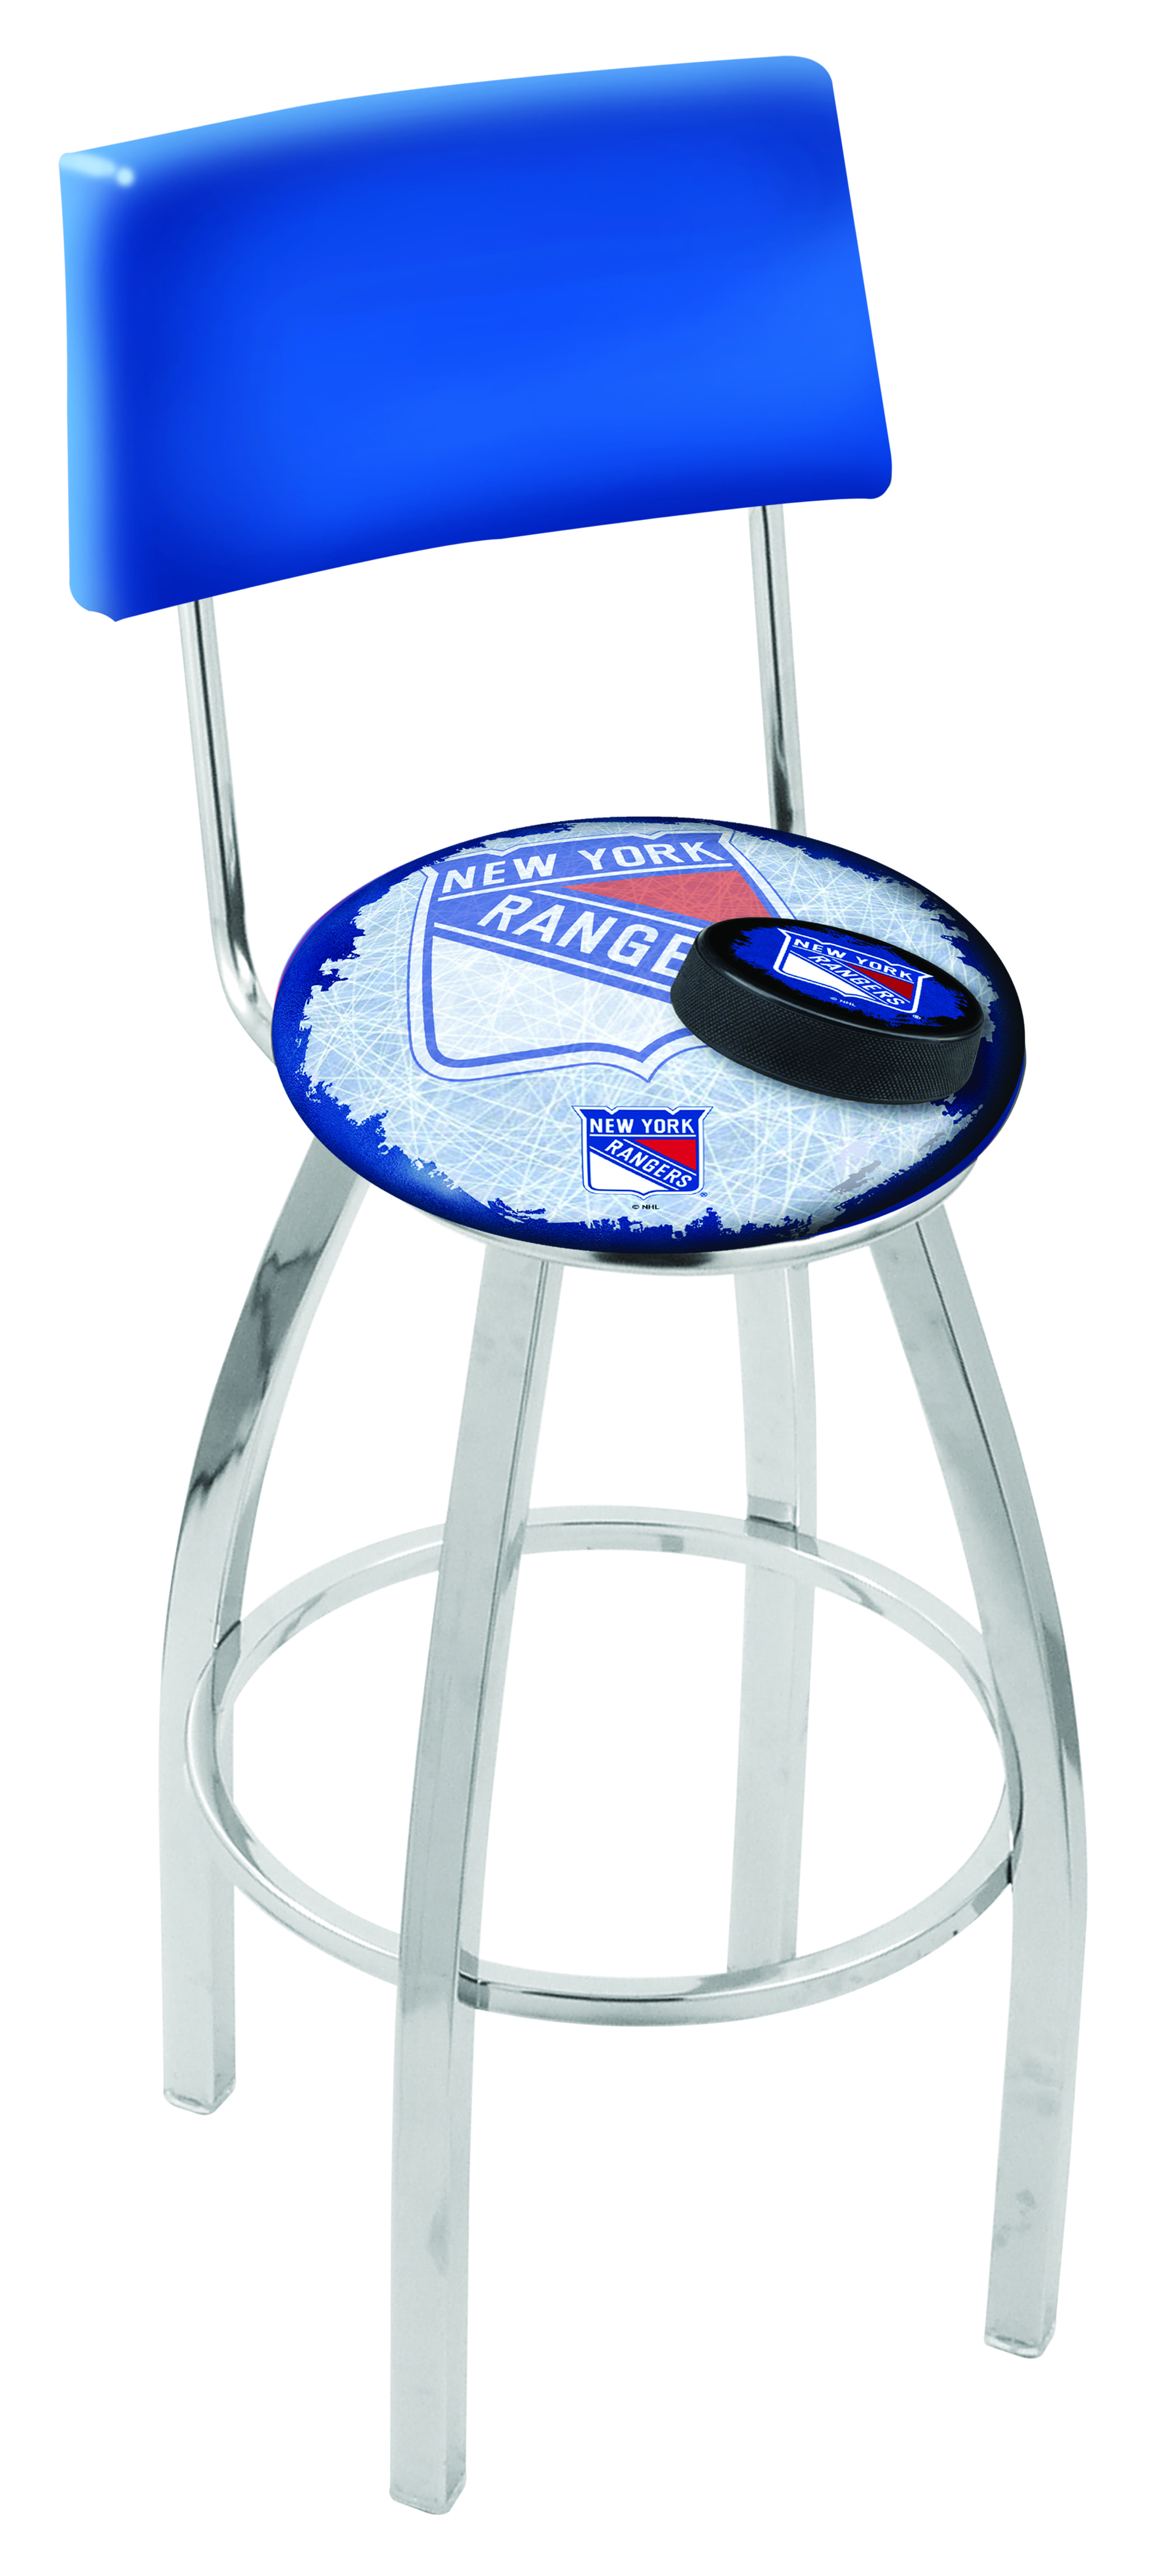 New York Rangers Counter Height Bar Stool w Official NHL  : L8C4NYRang D2 from www.familyleisure.com size 2059 x 4600 jpeg 923kB